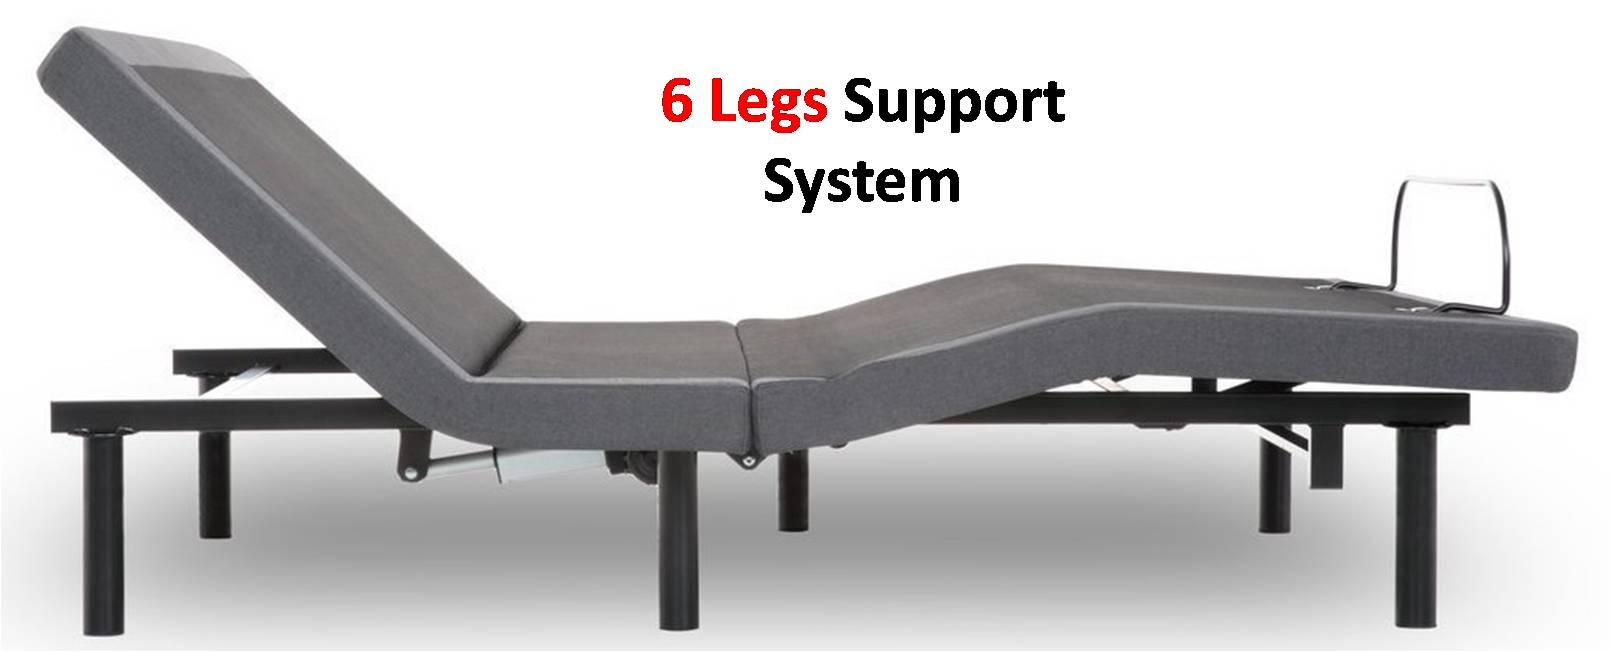 iDealBed 4i Custom Adjustable Bed Base Review - 6 Leg Support System